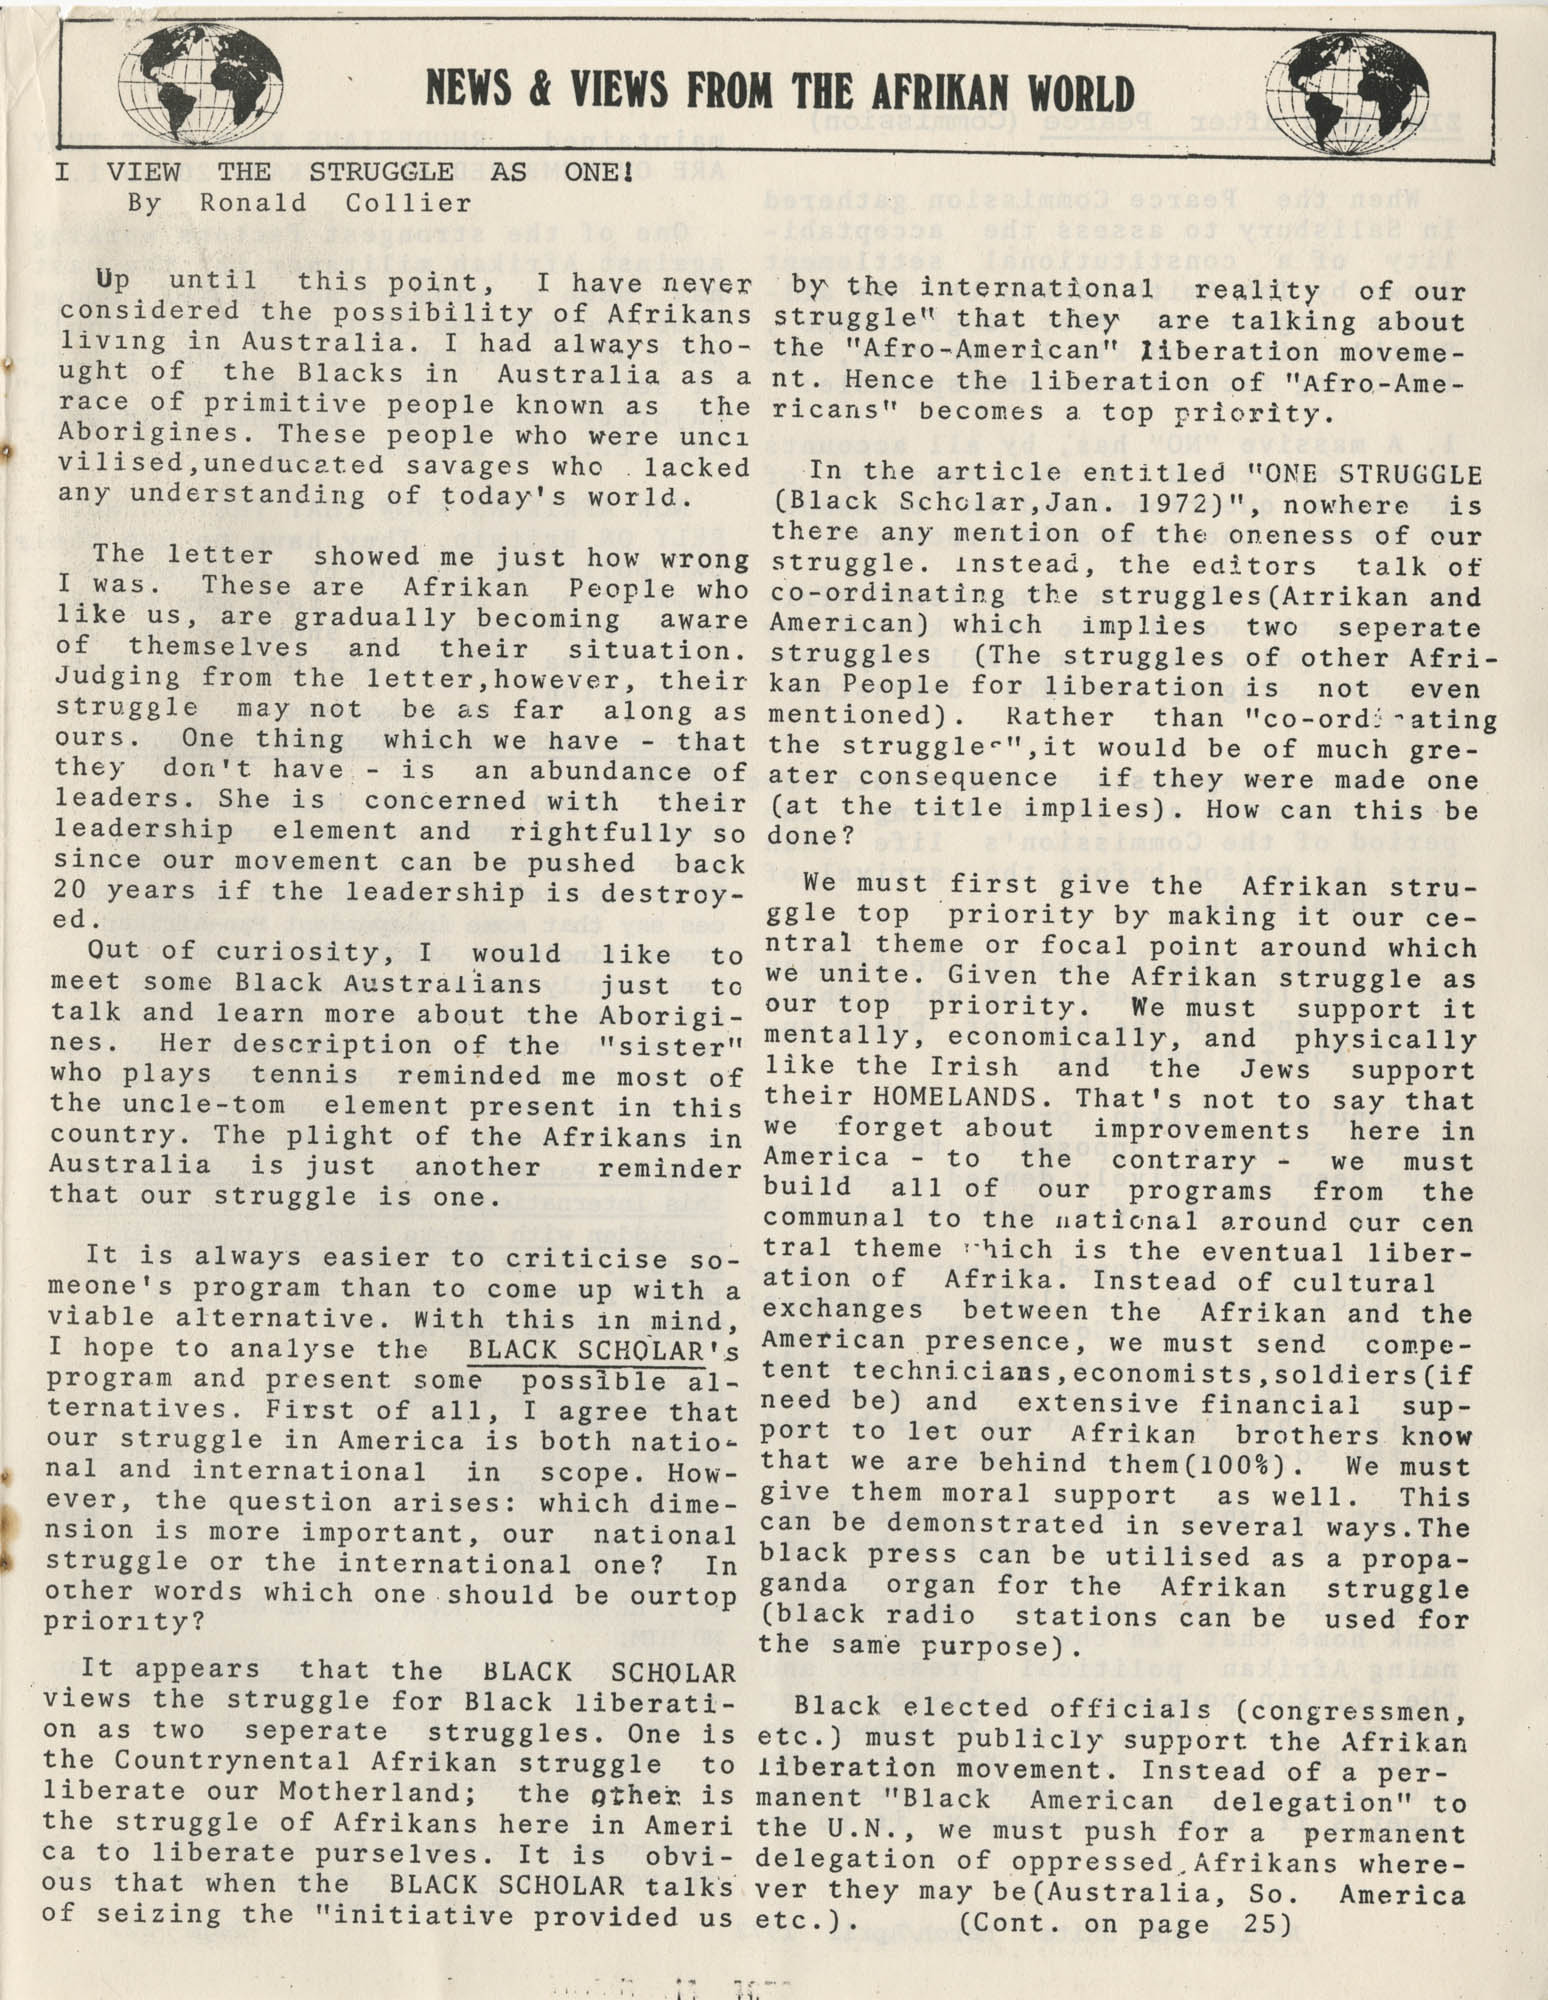 Afrika Must Unite, Vol. 1, No. 4, Page 21